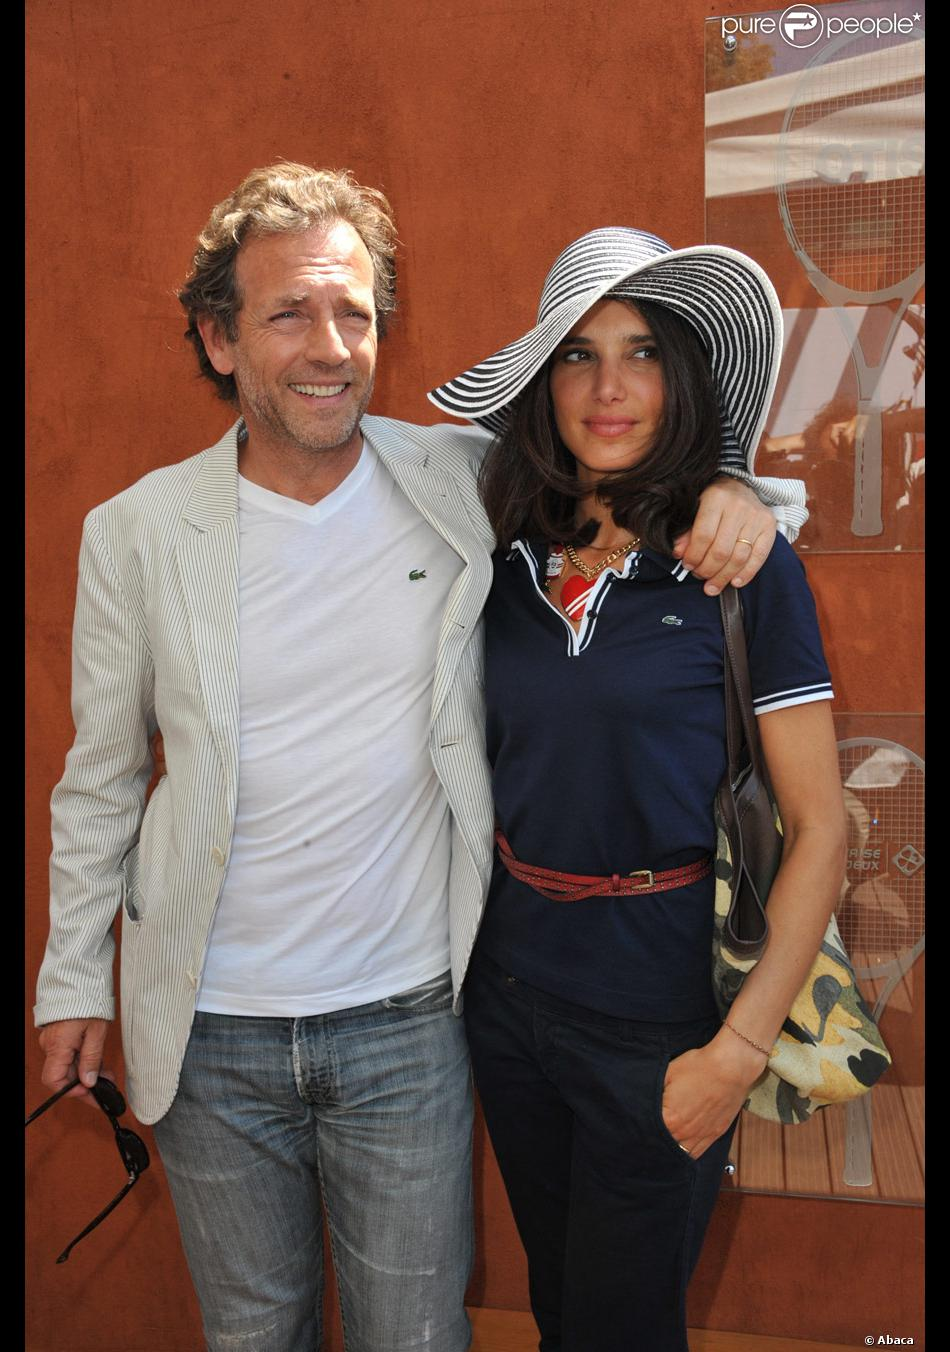 st phane freiss et sa femme ursula roland garros le 3 juin 2011 purepeople. Black Bedroom Furniture Sets. Home Design Ideas